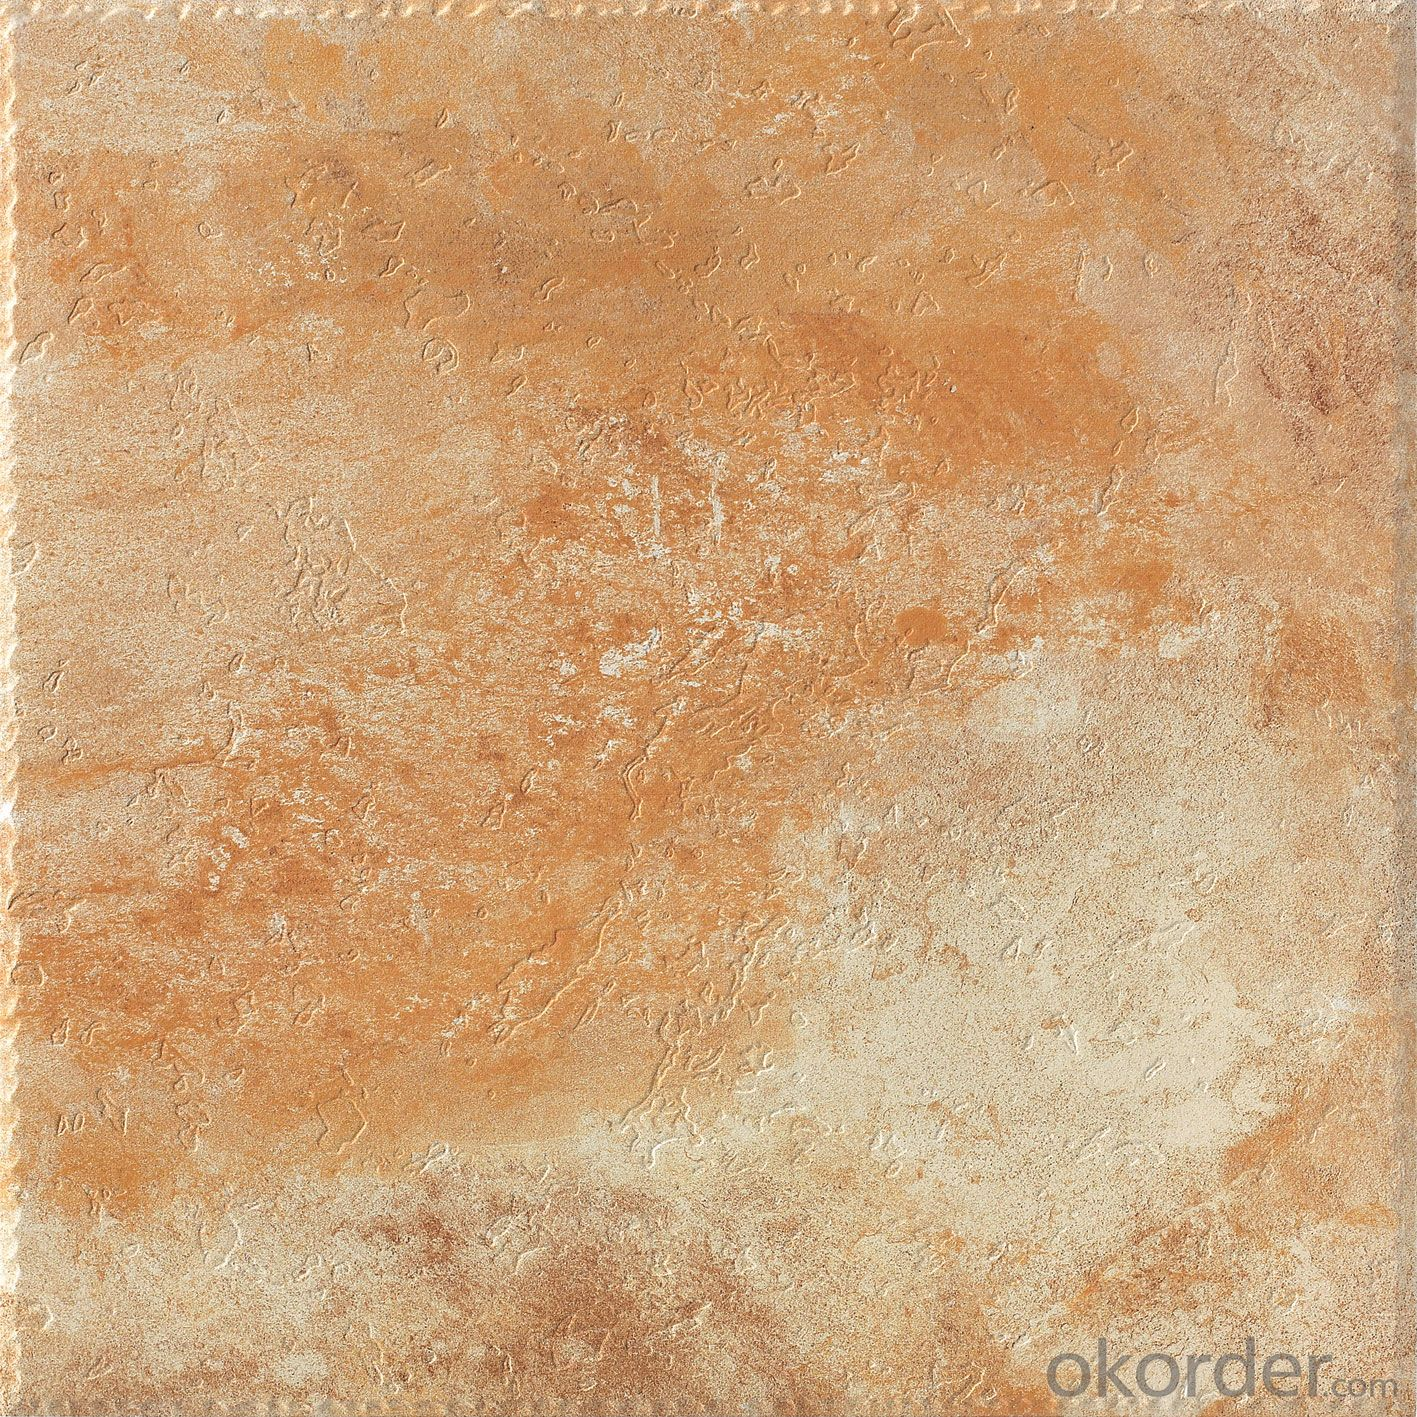 Glazed Porcelain Floor Tile 600x600mm CMAX-A6001